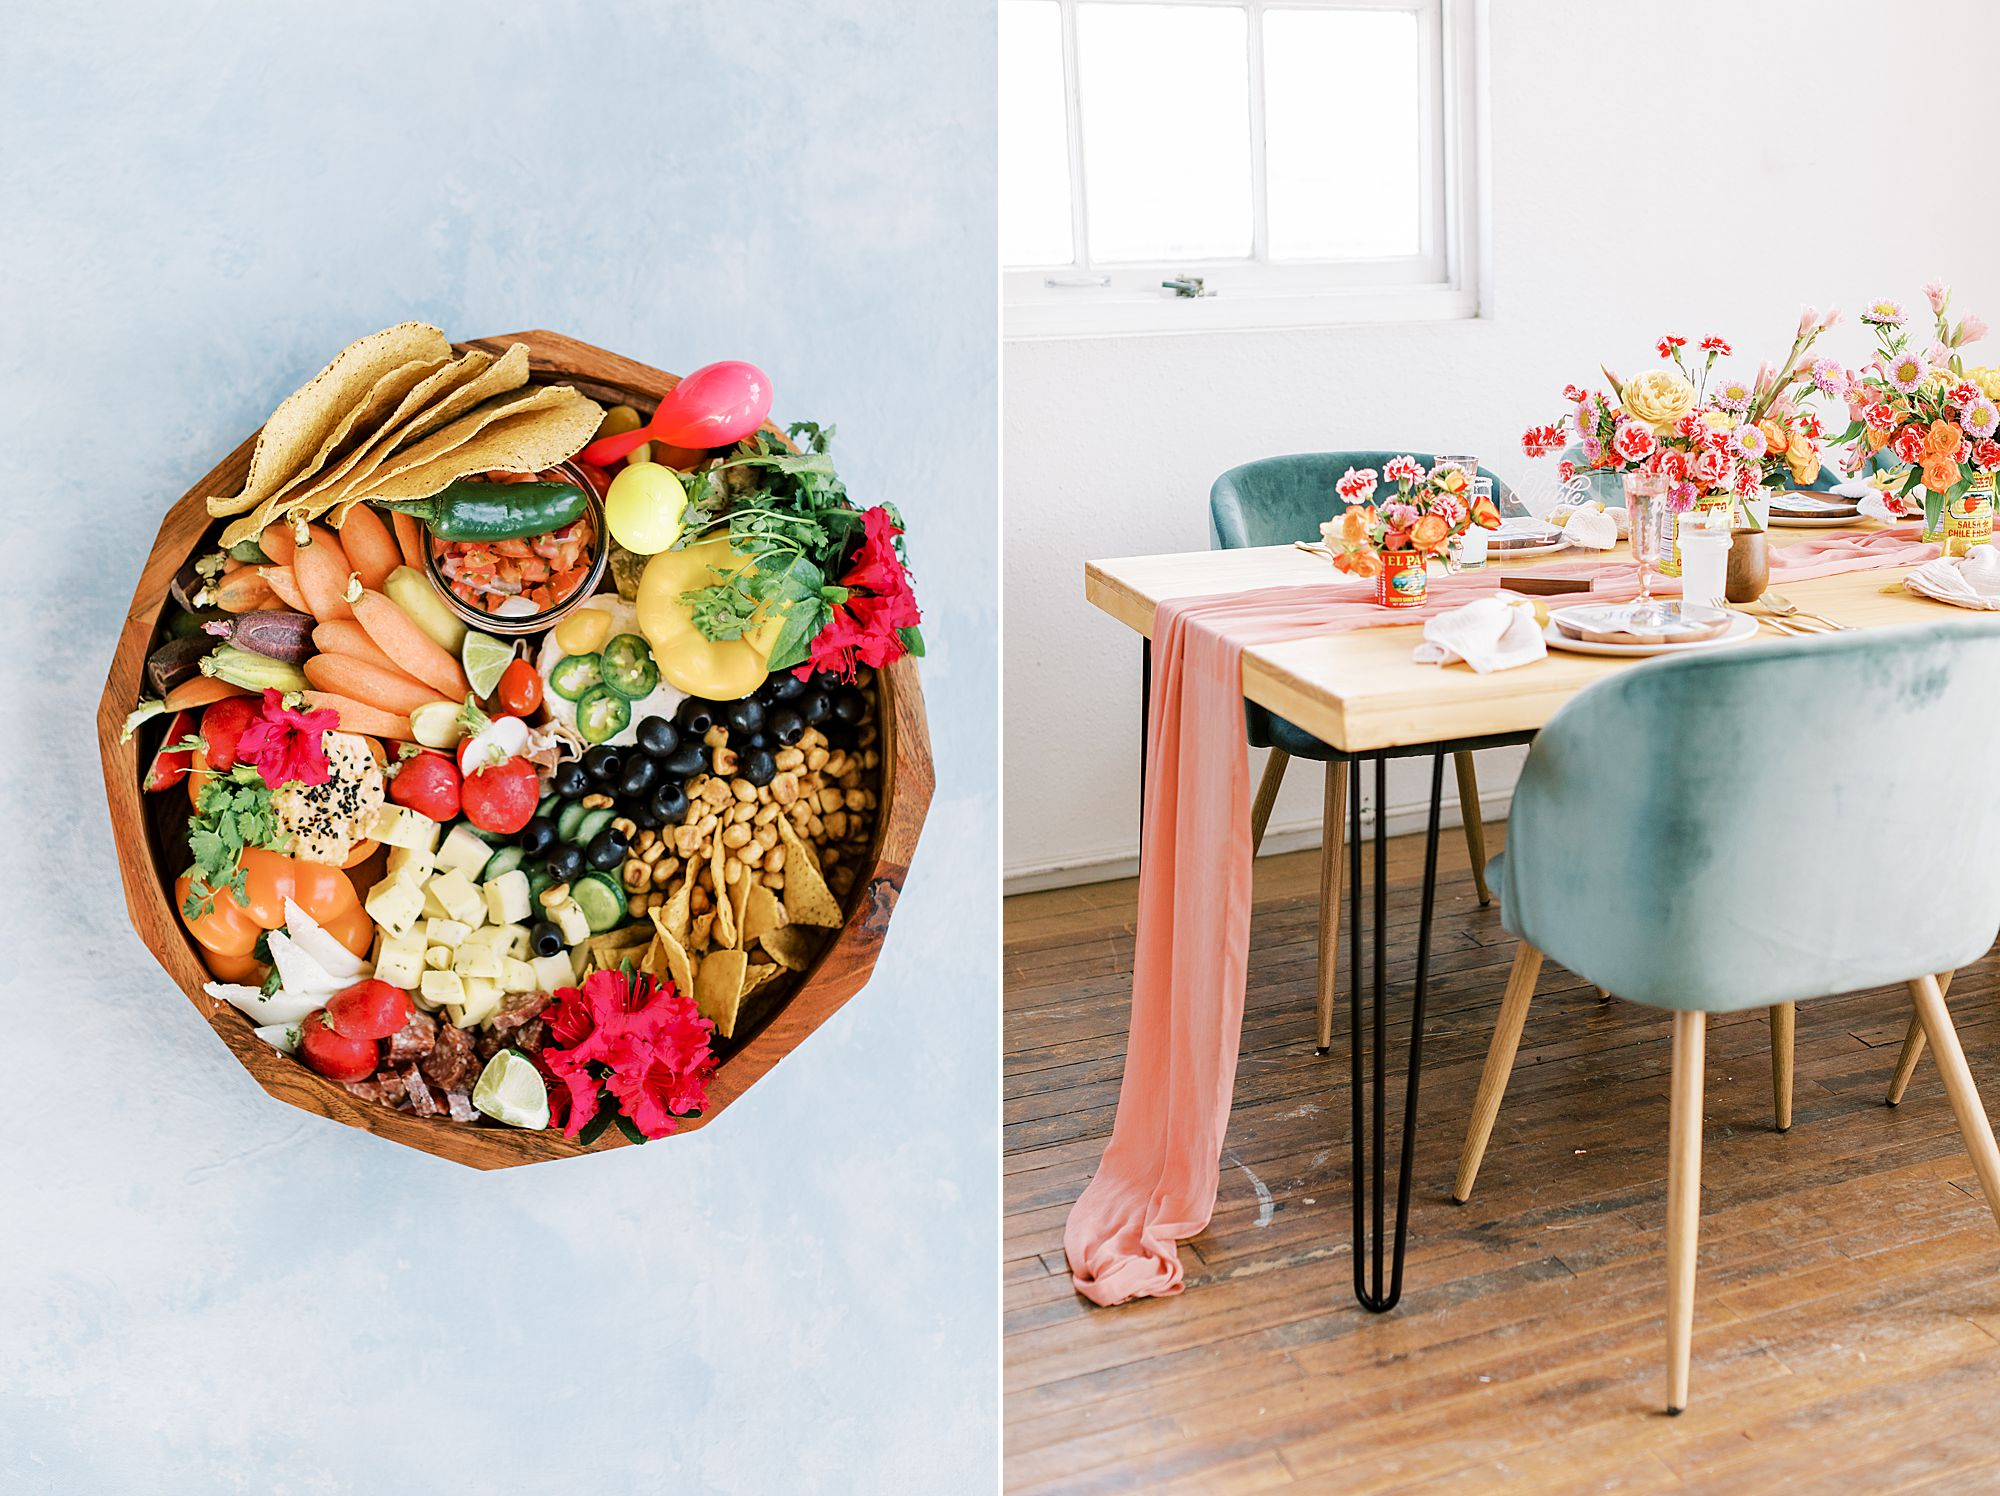 Cinco De Mayo Inspiration for Your FIesta - Party Crush Studio and Ashley Baumgartner_0008.jpg